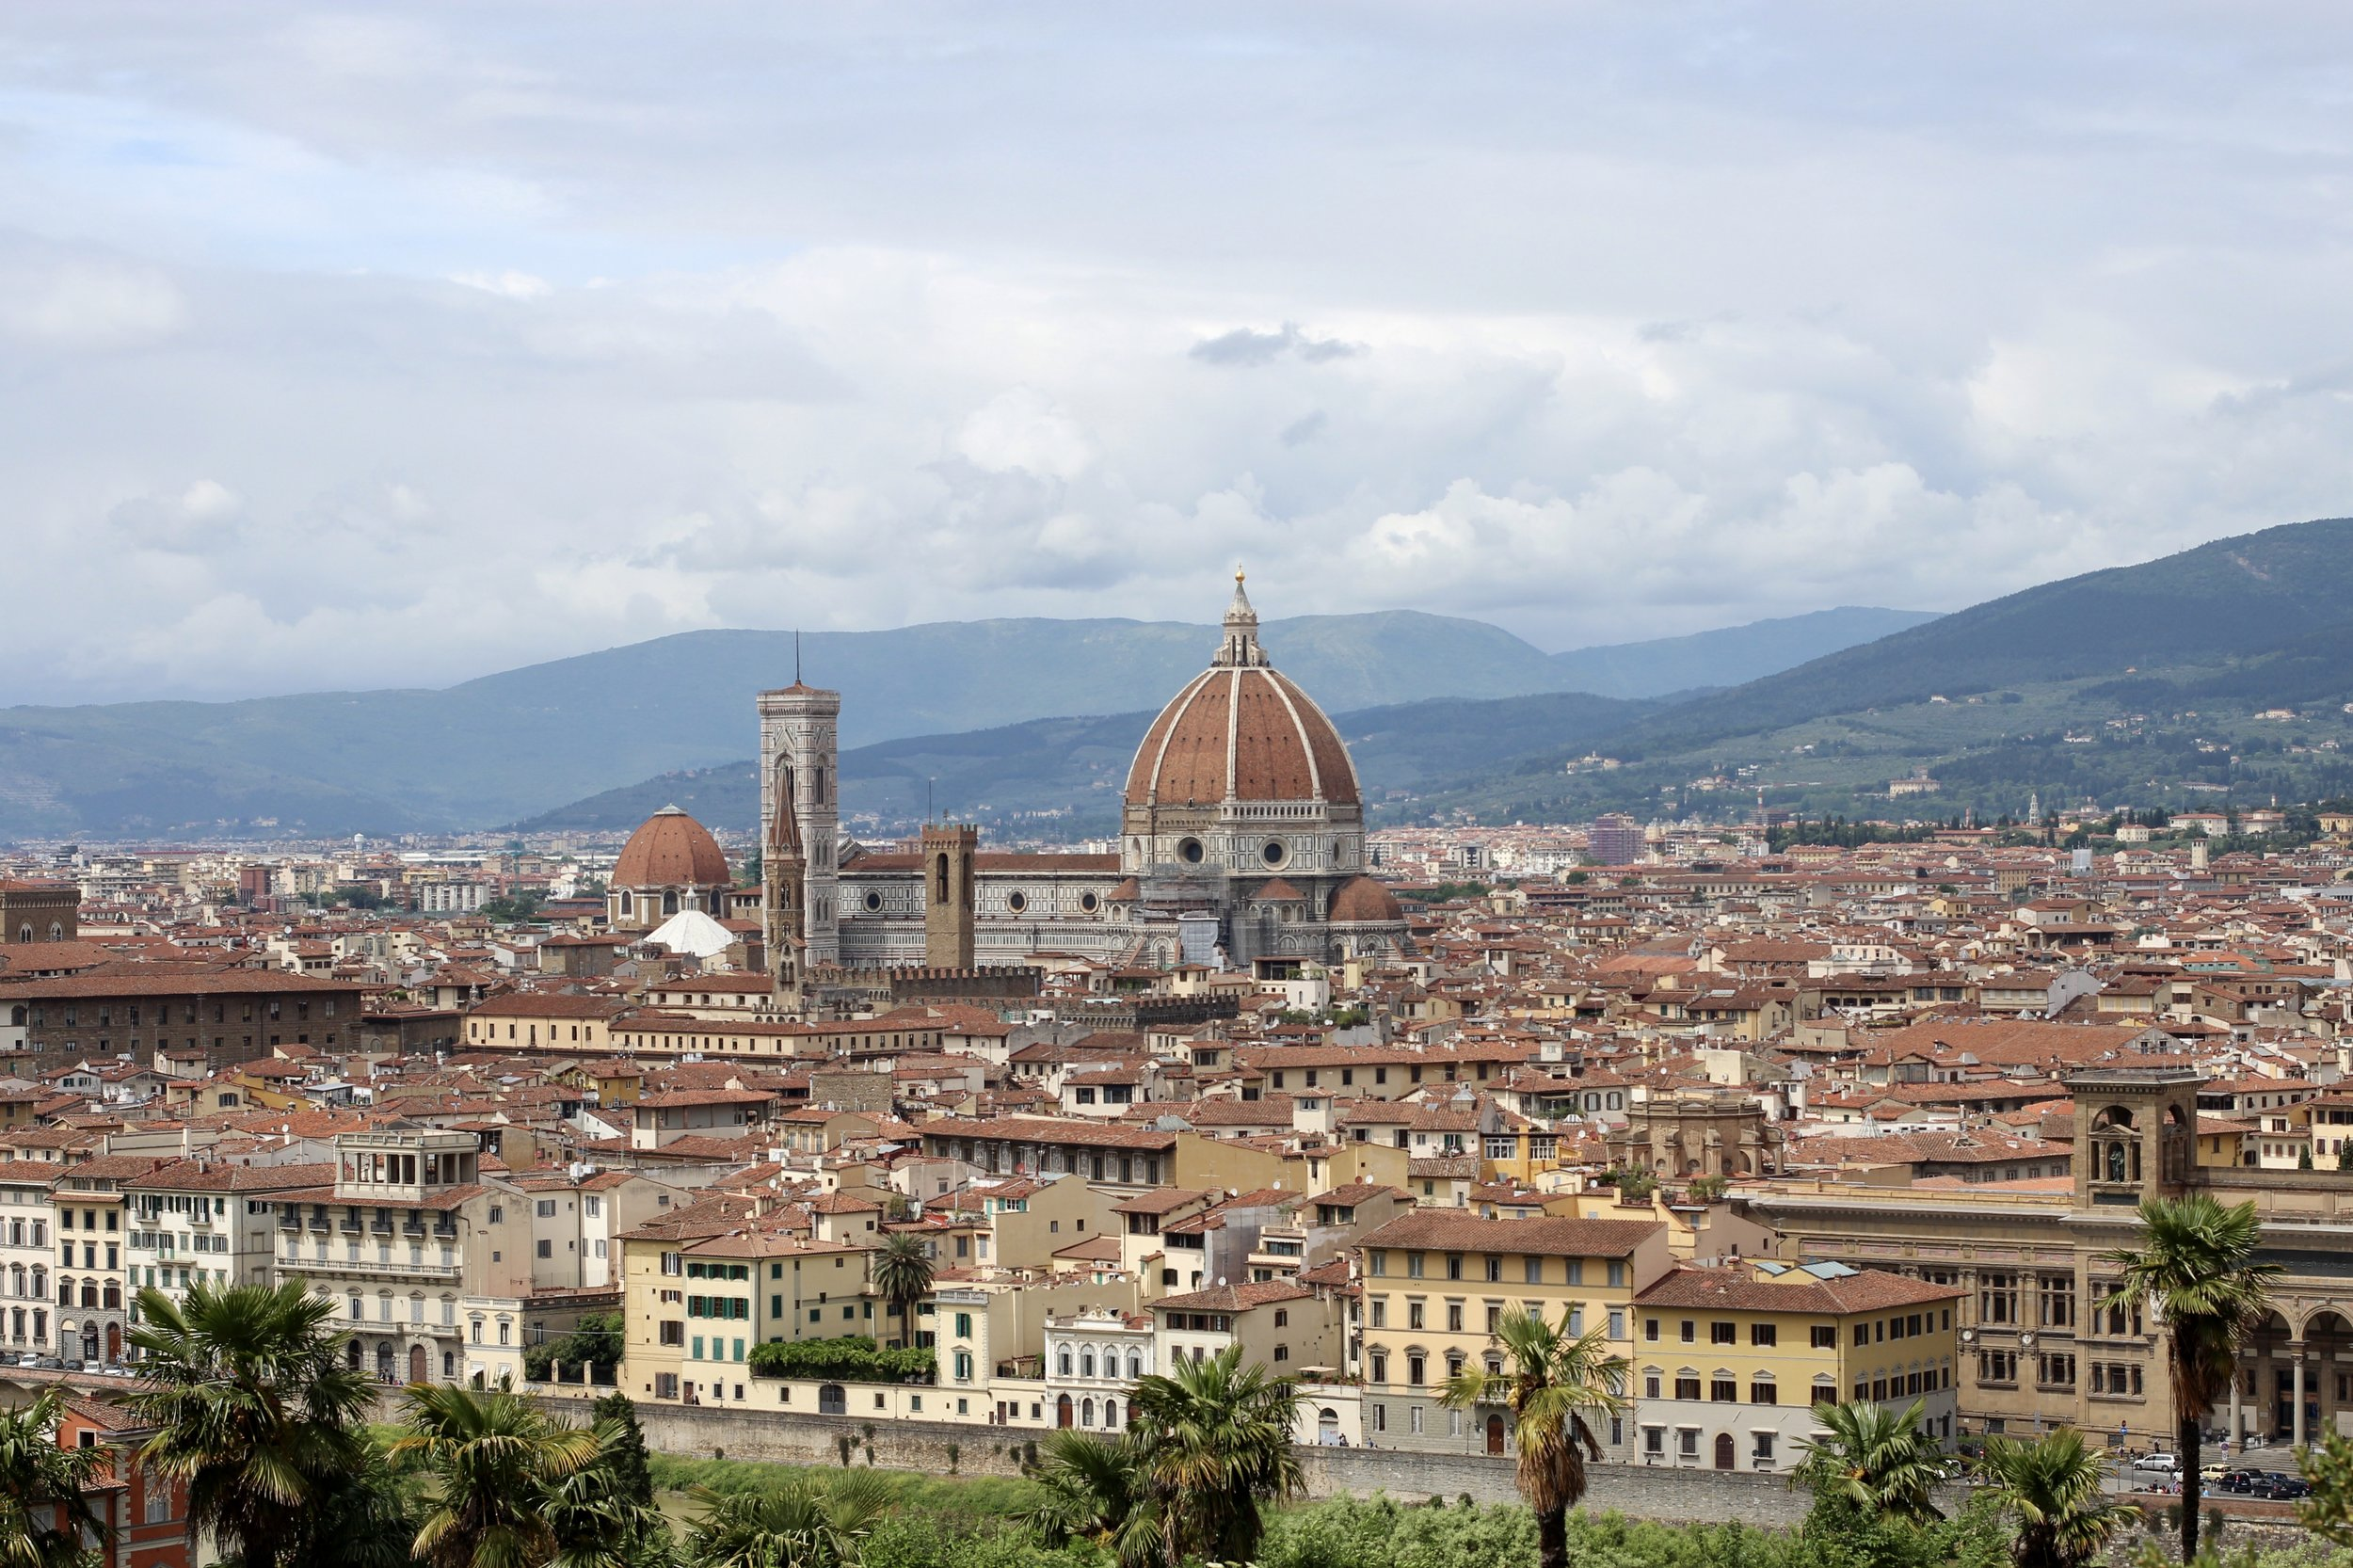 The view of the Florence Duomo from Piazzale Michelangelo